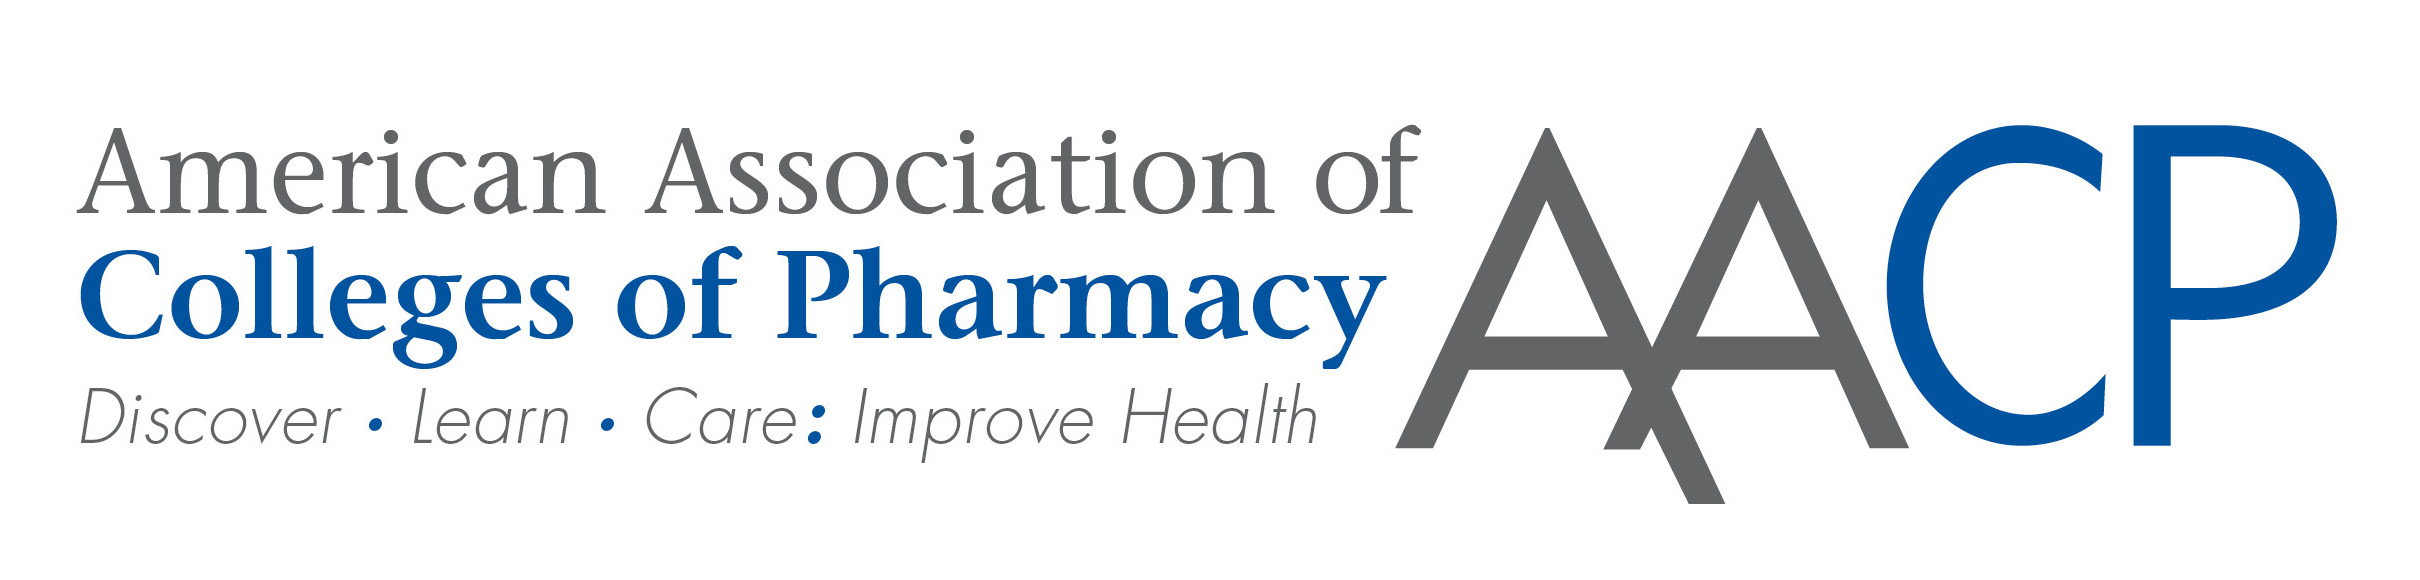 American Association of Colleges of Pharmacy